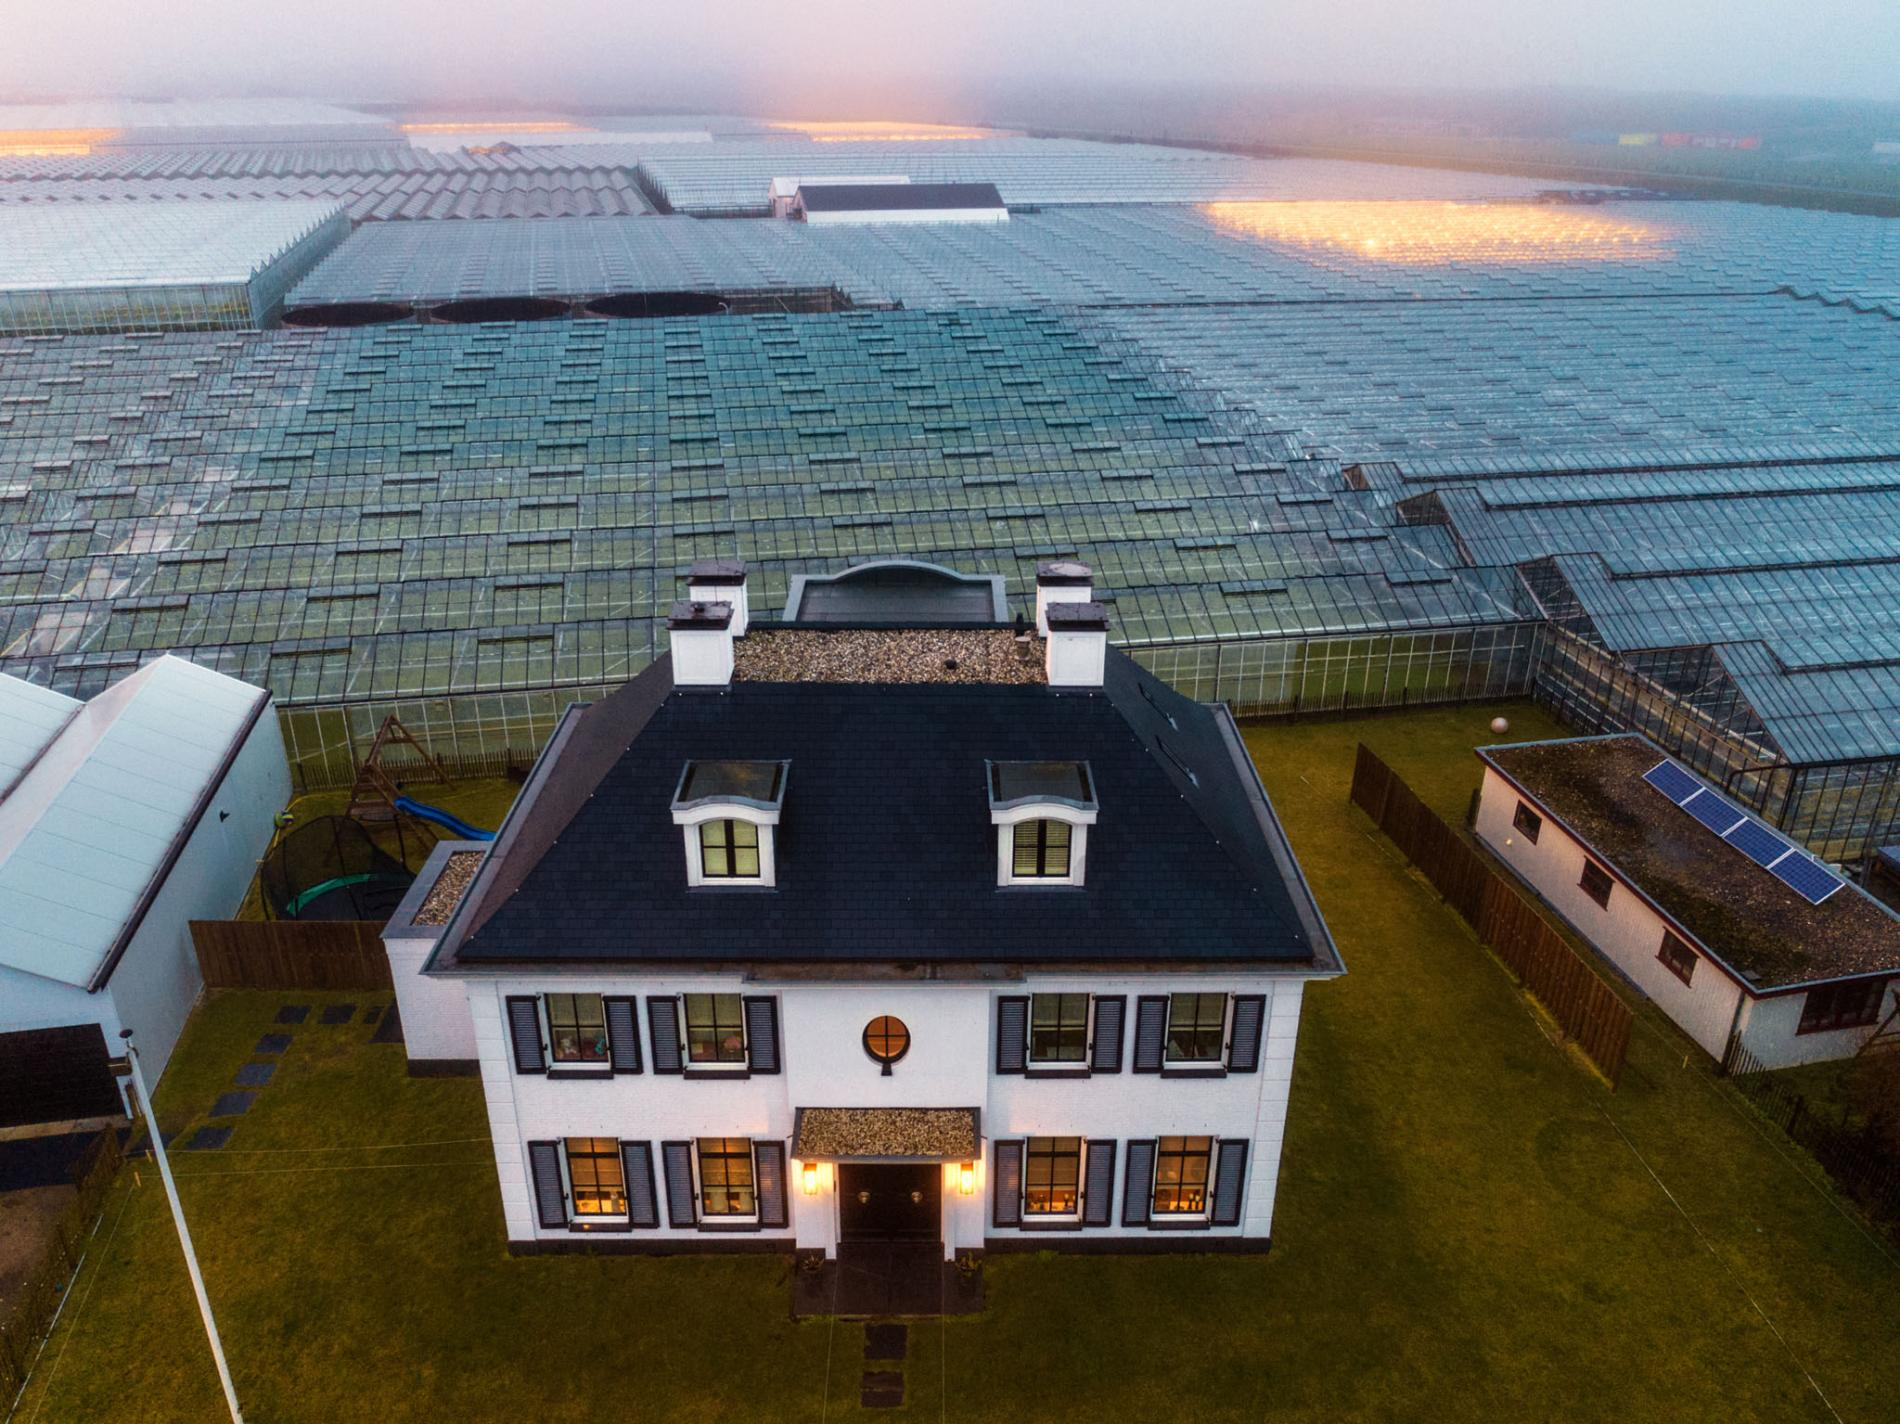 A sea of greenhouses covers much of the Netherlands' Westland region, which accounts for more than half of all horticultural production in the nation. Photo by  National Geographic